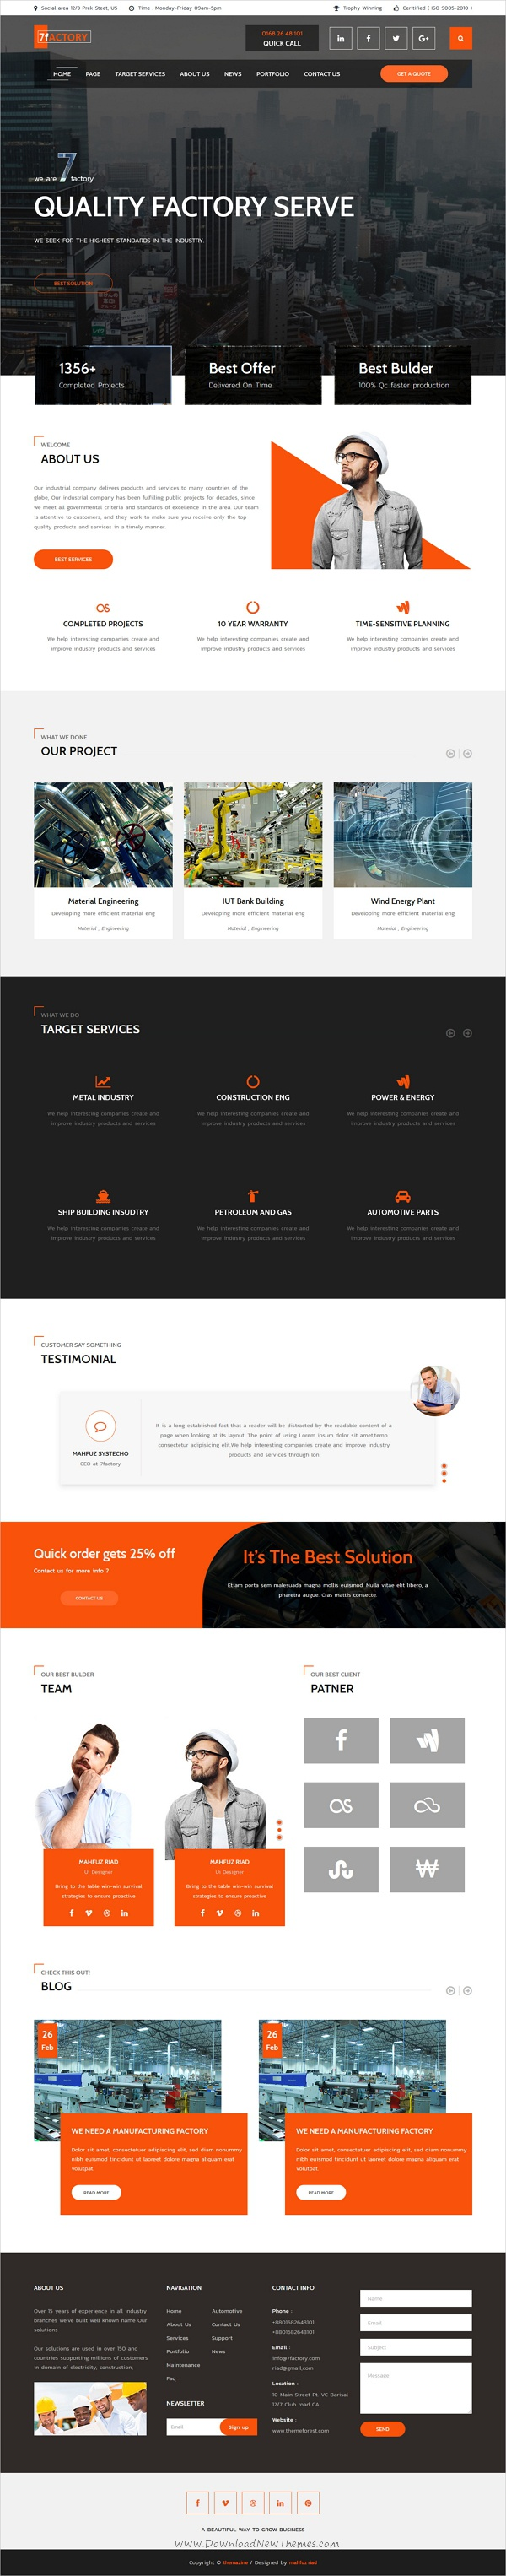 7factory Industrial Factory Manufacturing Html Template Web Layout Design Website Design Inspiration Wellness Design